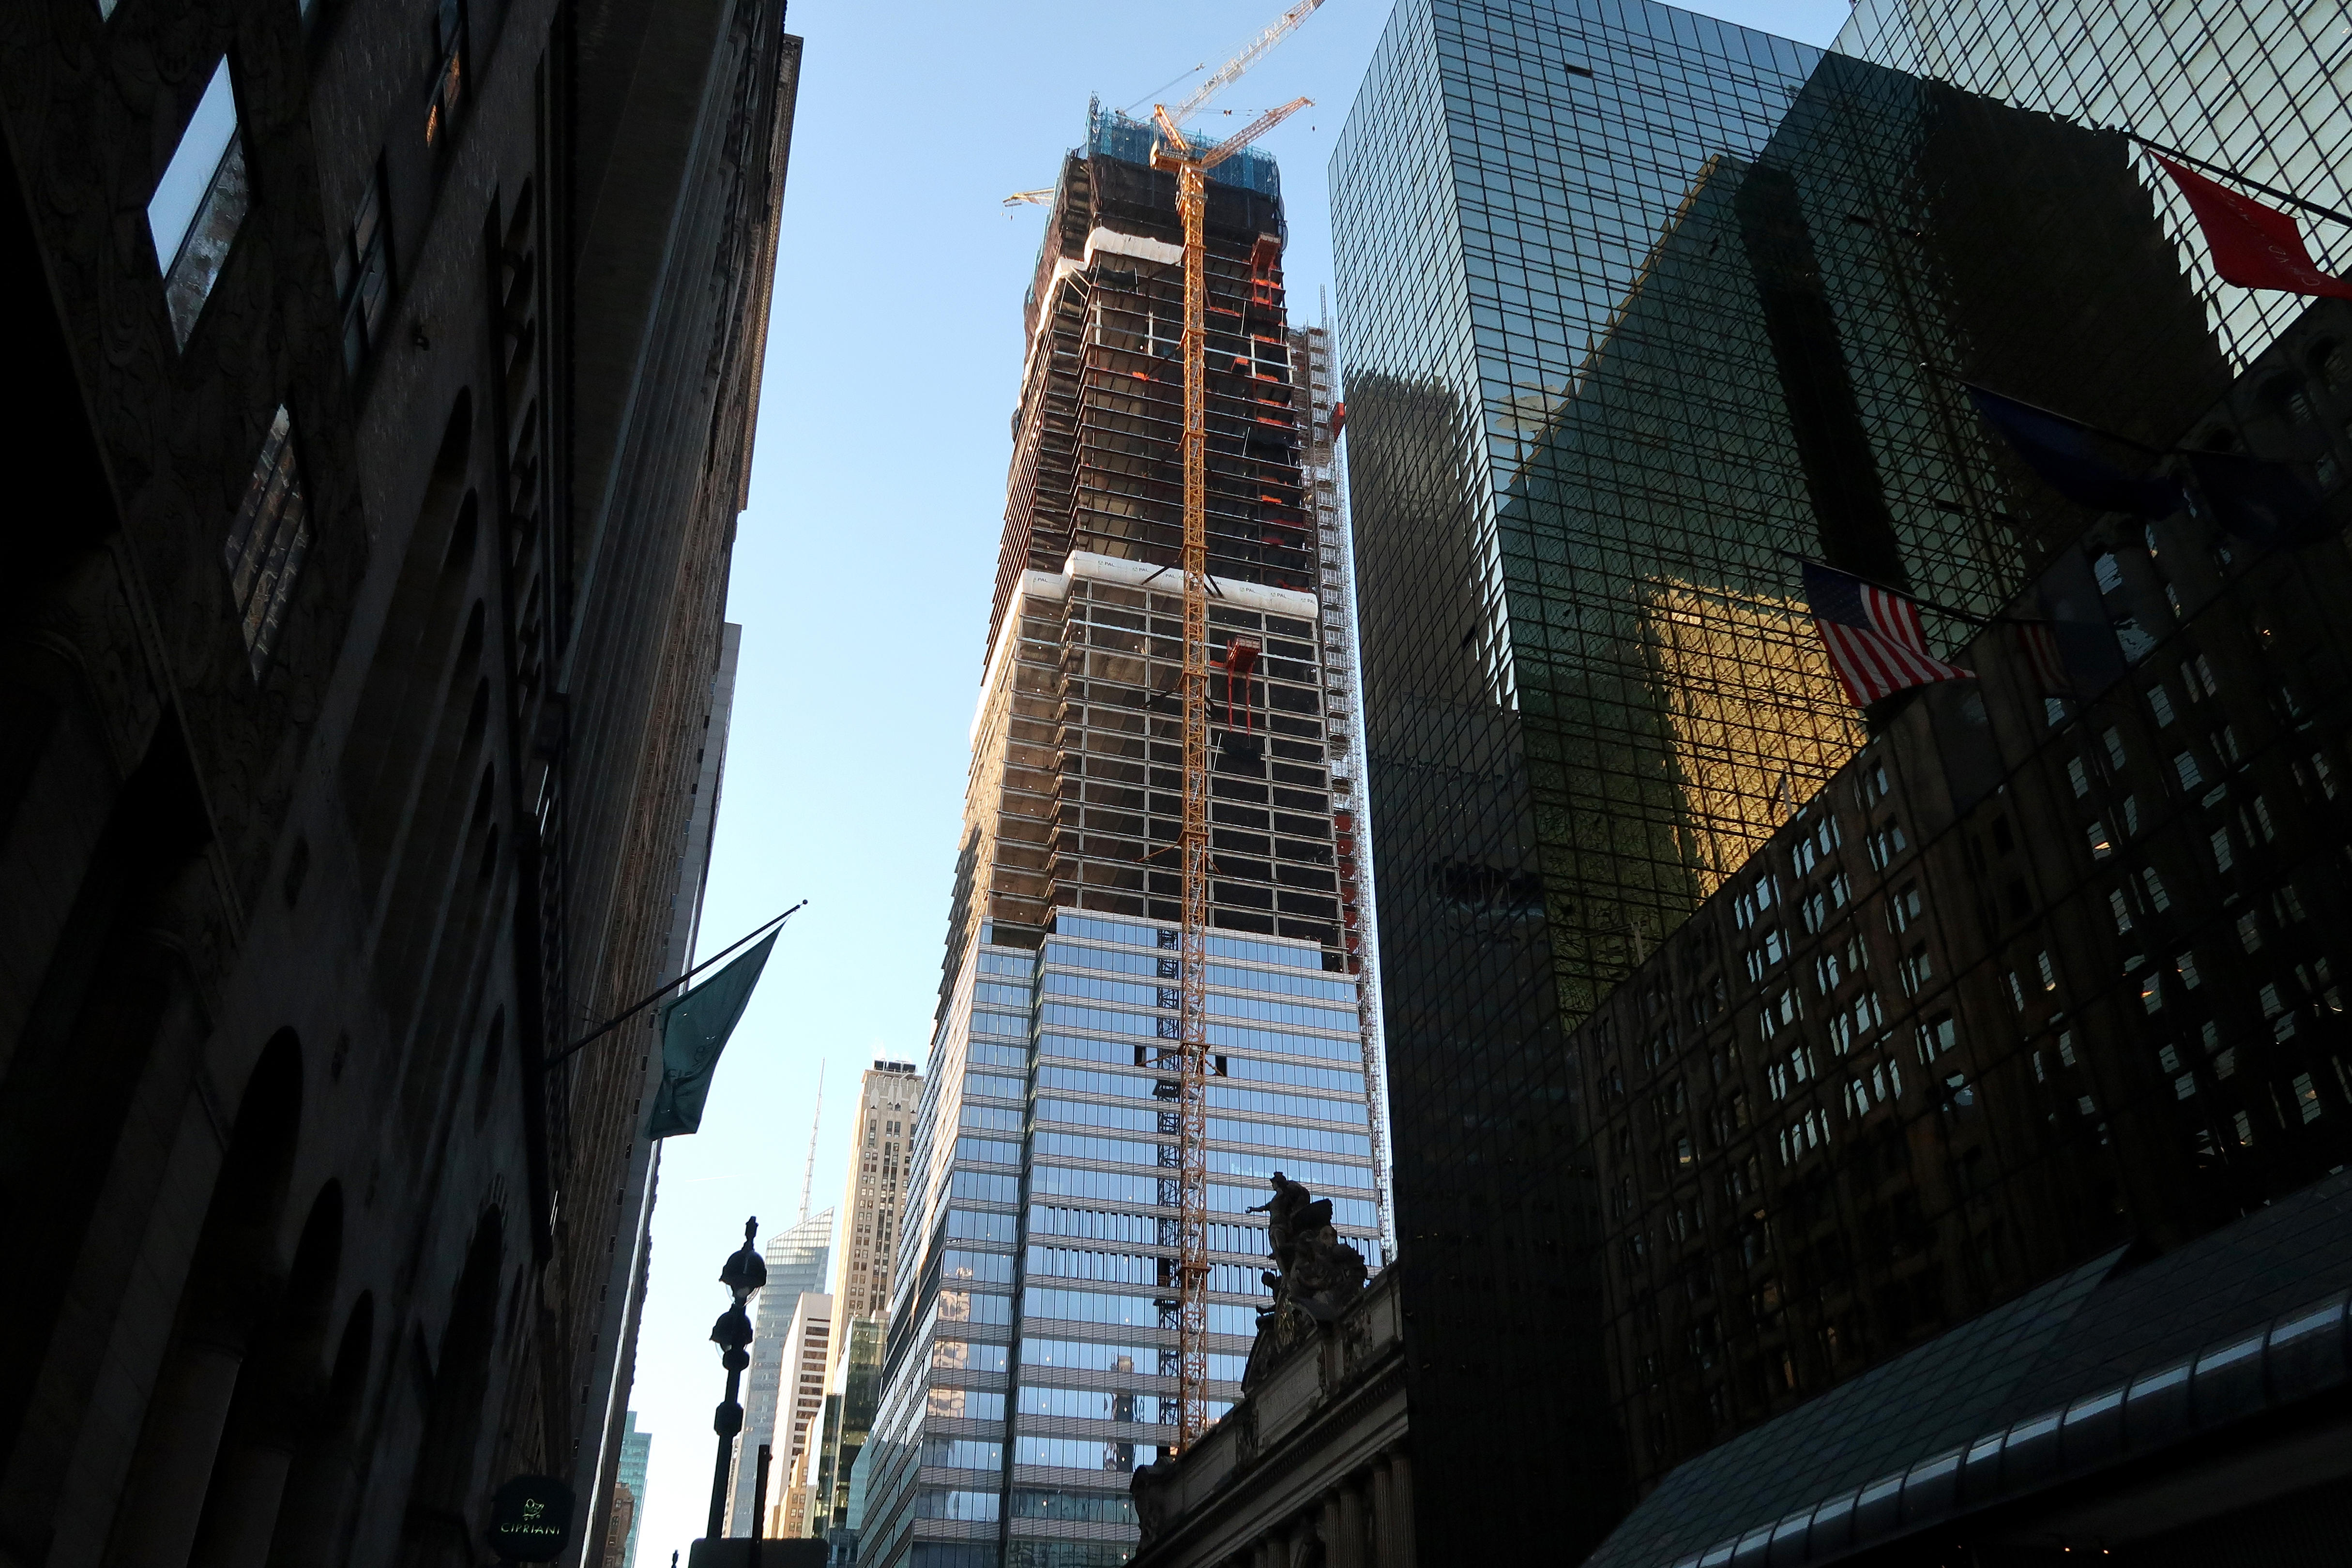 One Vanderbilt at 1 Vanderbilt Avenue (Credit: Getty Images)